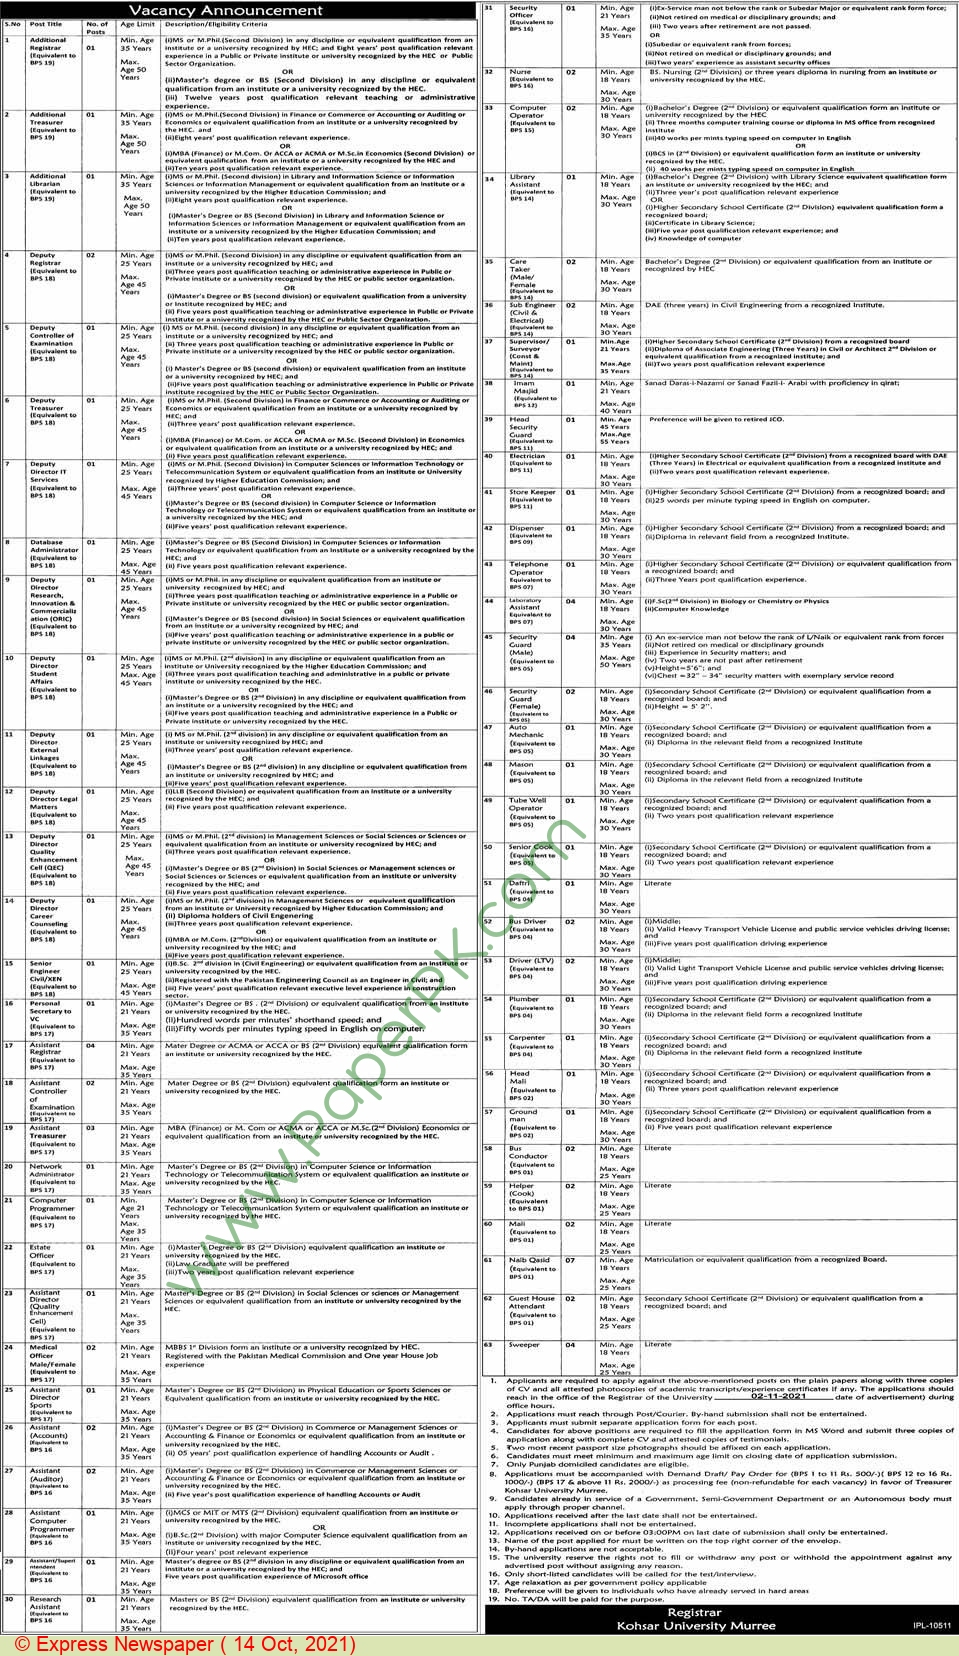 Kohsar University jobs newspaper ad for Library Assistant in Murree on 2021-10-14